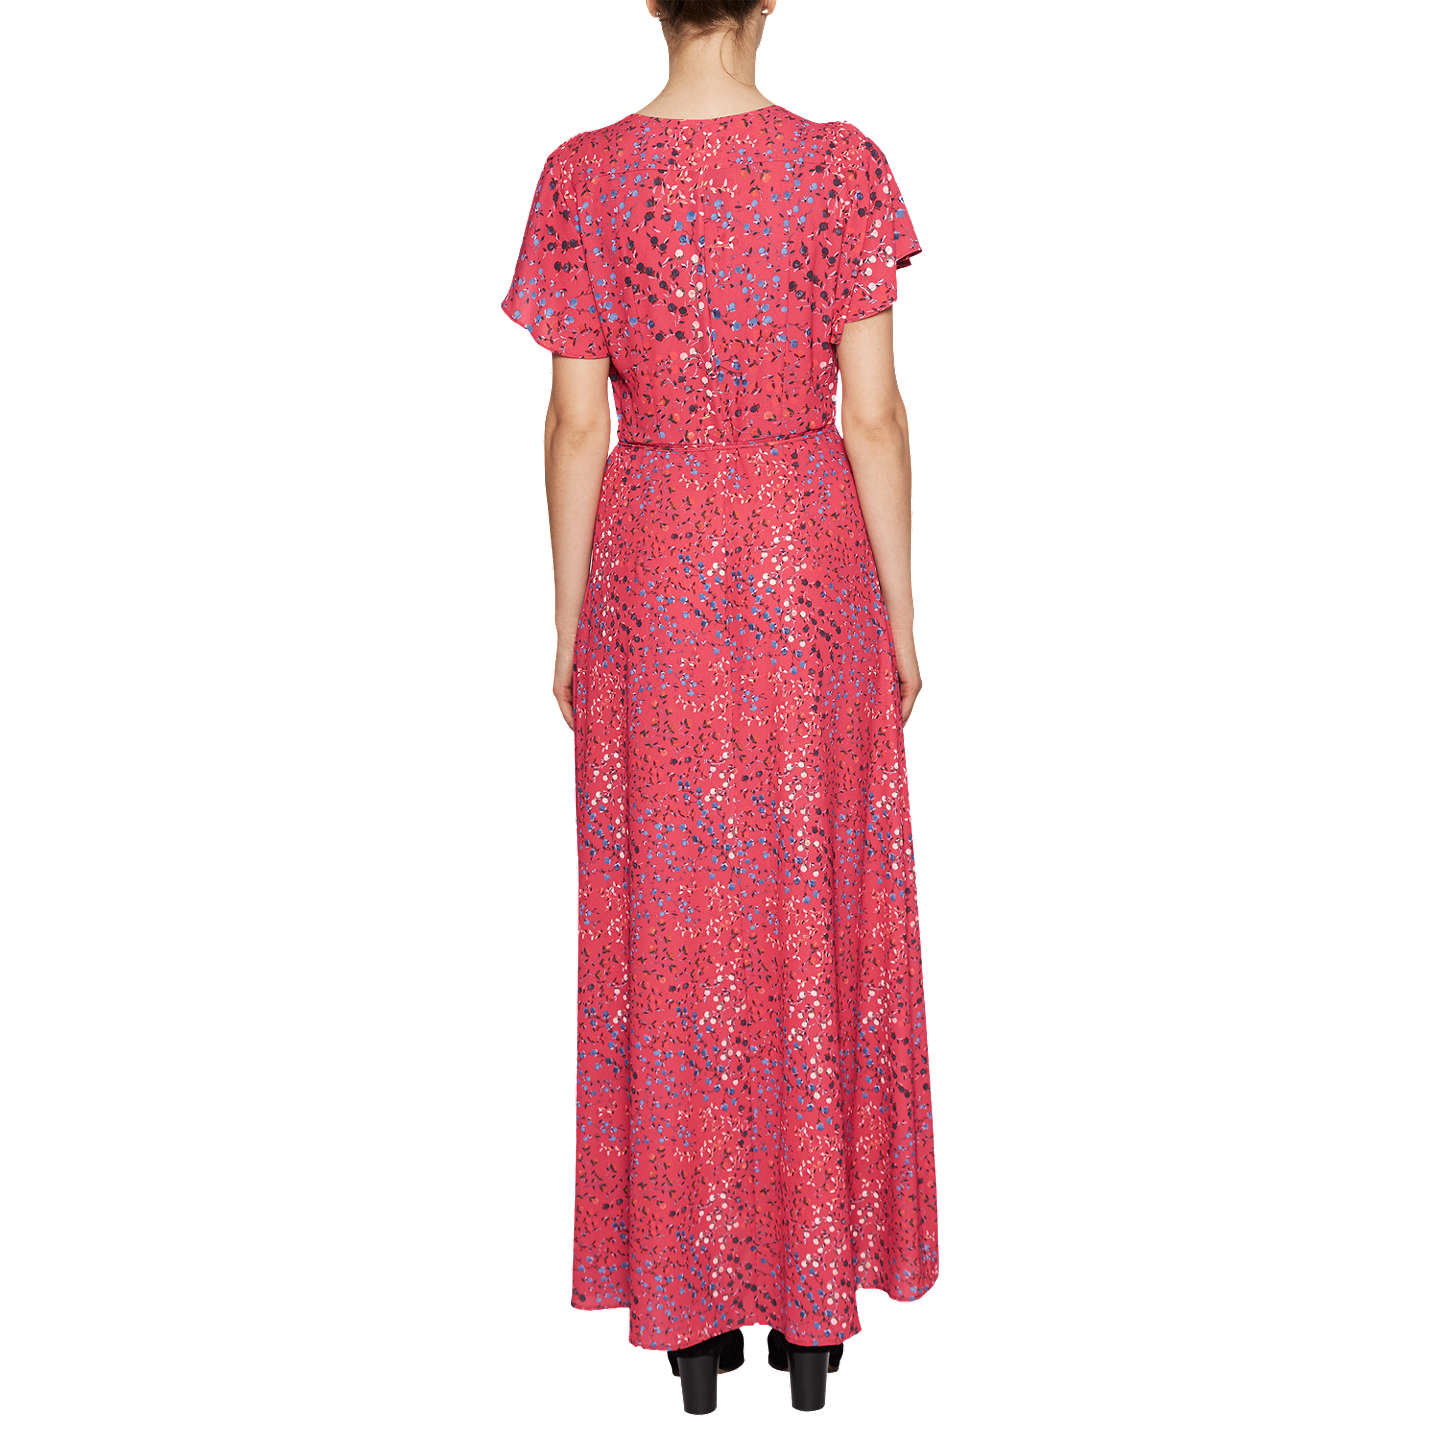 BuyFrench Connection Frances Drape V-Neck Maxi Dress, Watermelon Multi, 6 Online at johnlewis.com